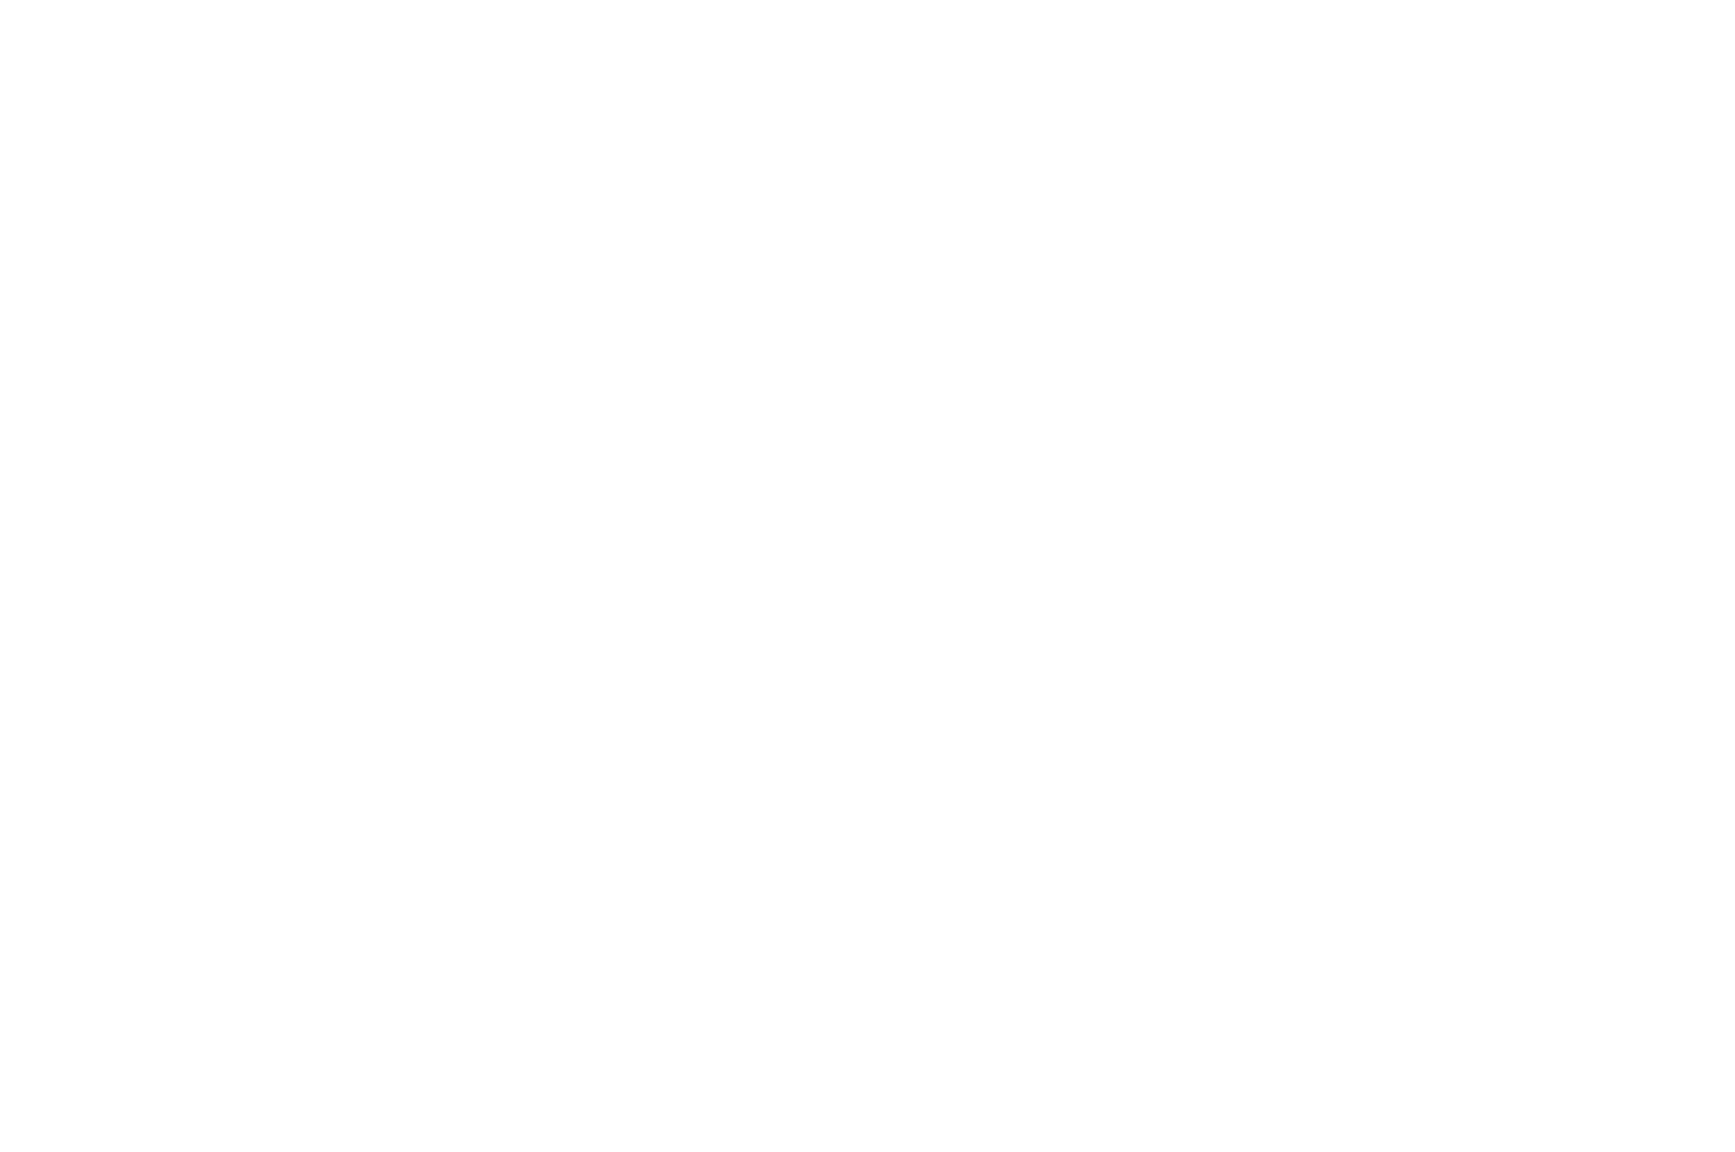 OFFICIAL SELECTION - New York Tri-State International Film Festival - 2021